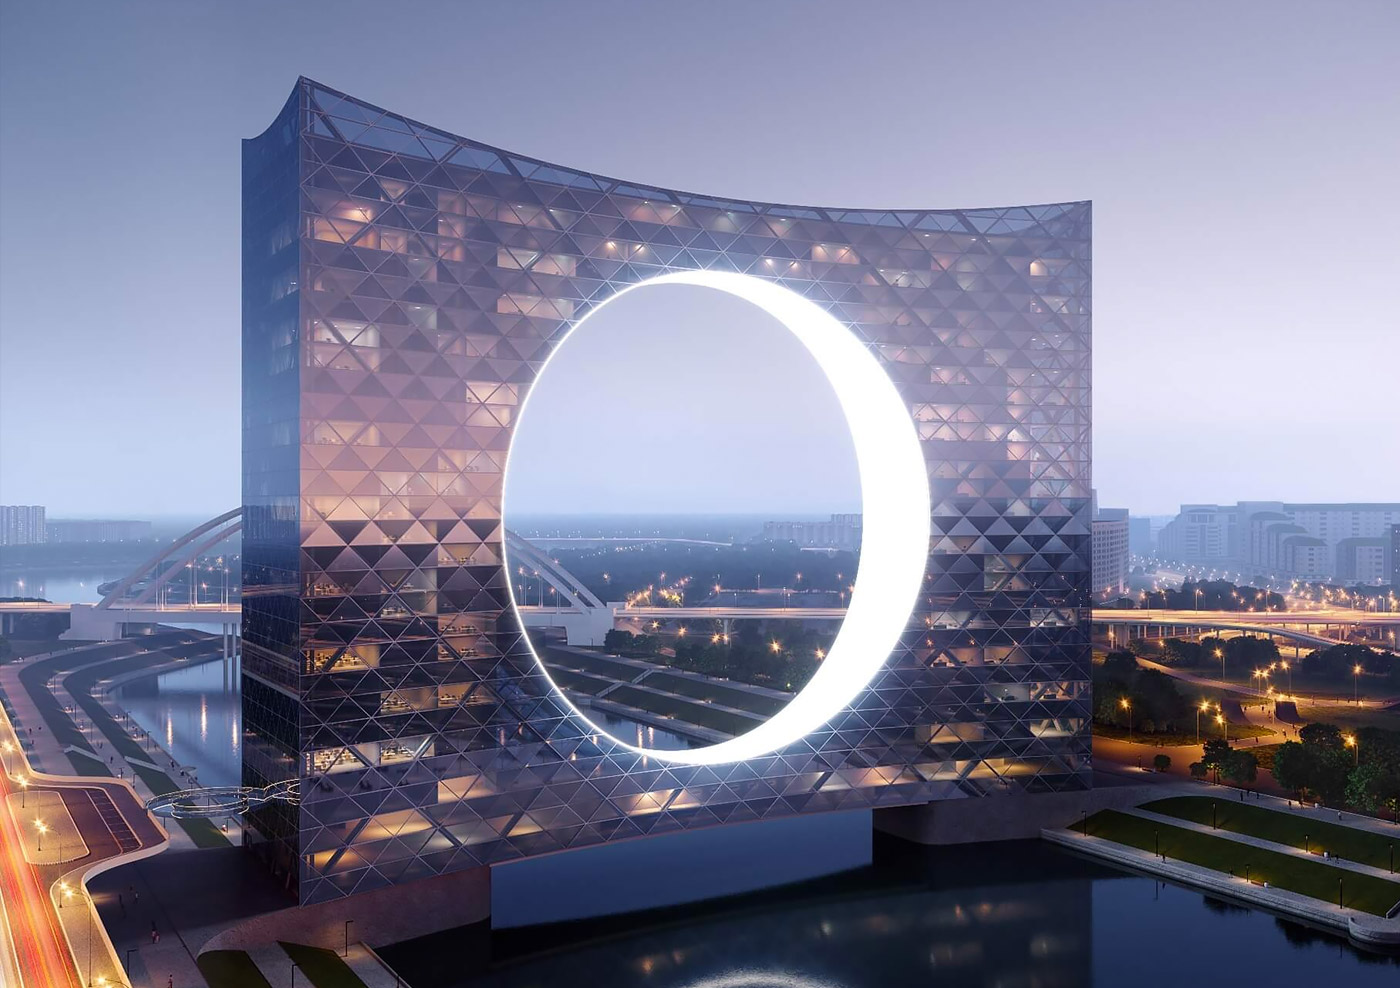 Of the sun tower